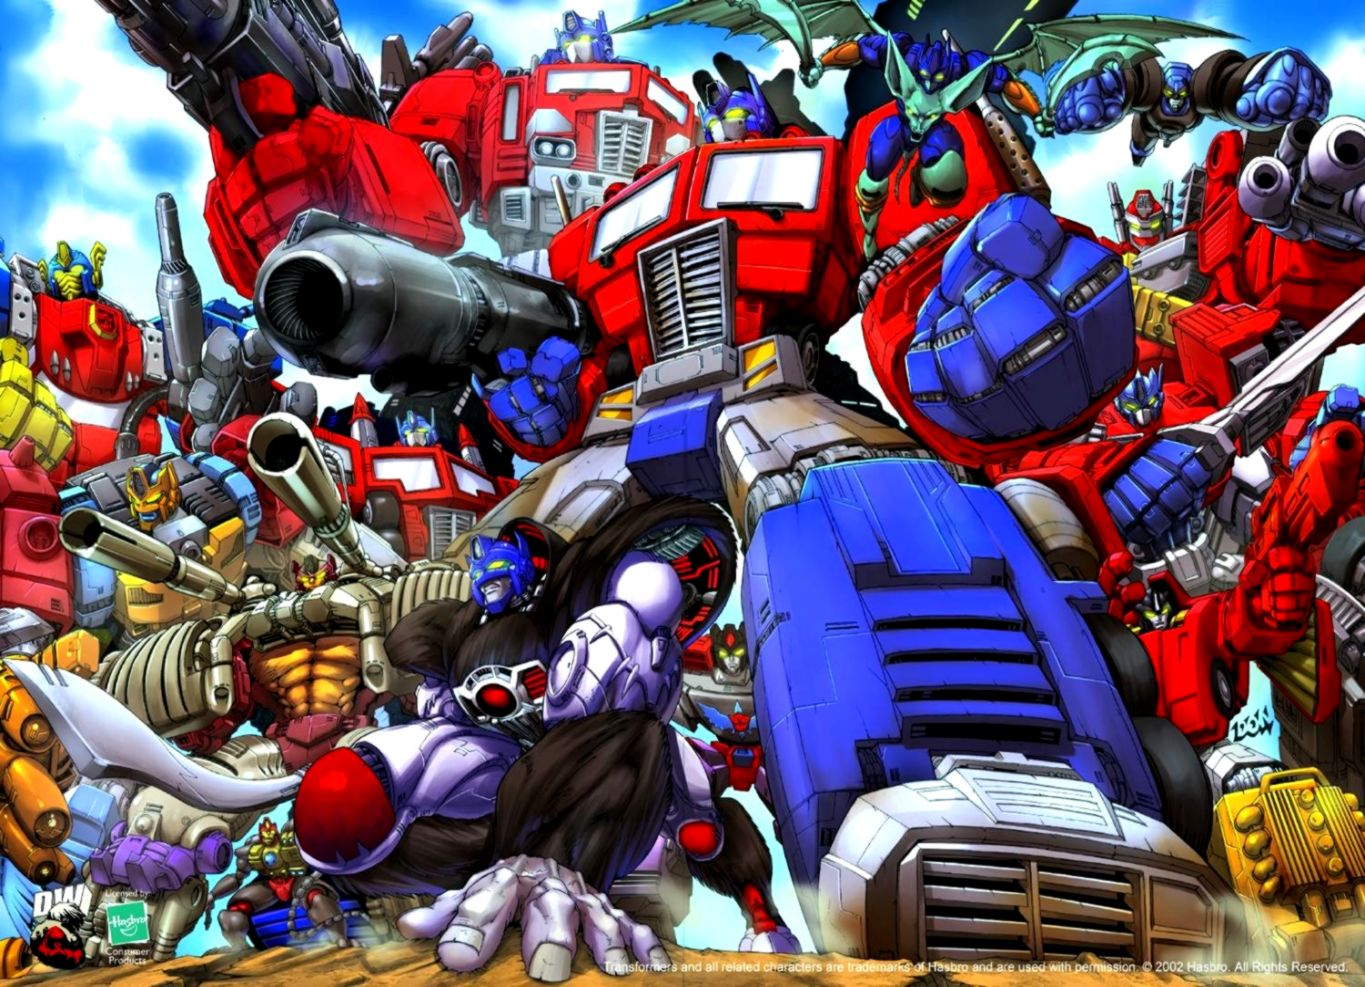 Transformers Autobot Wallpaper Gold Wallpapers